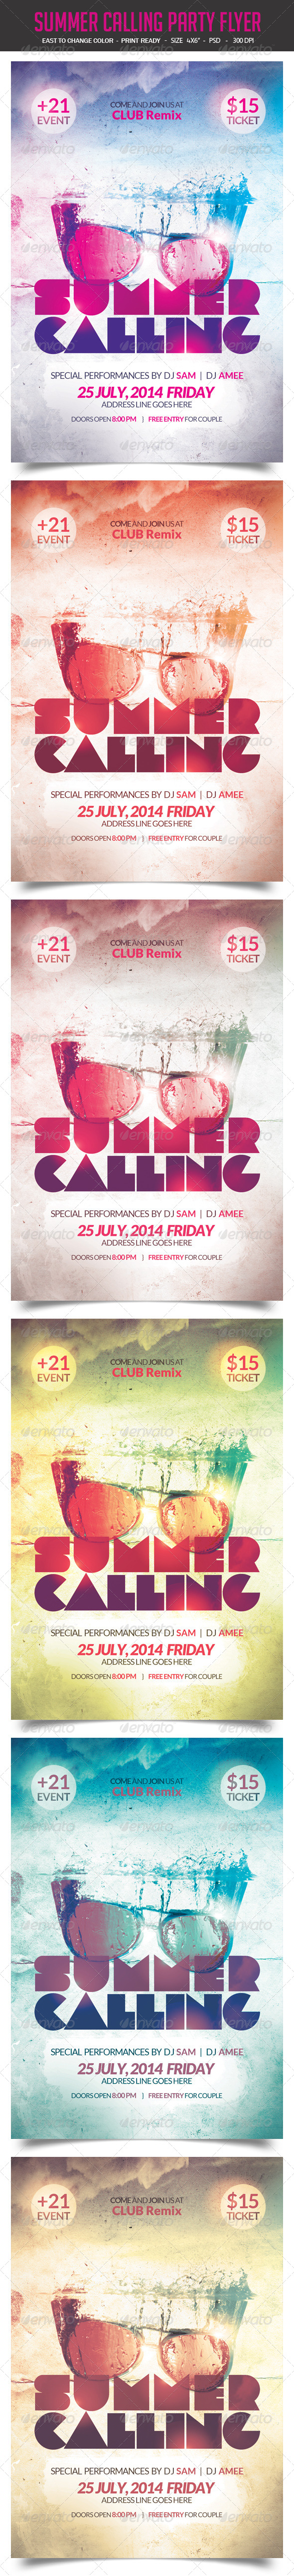 GraphicRiver Summer Calling Party Flyer 8234367